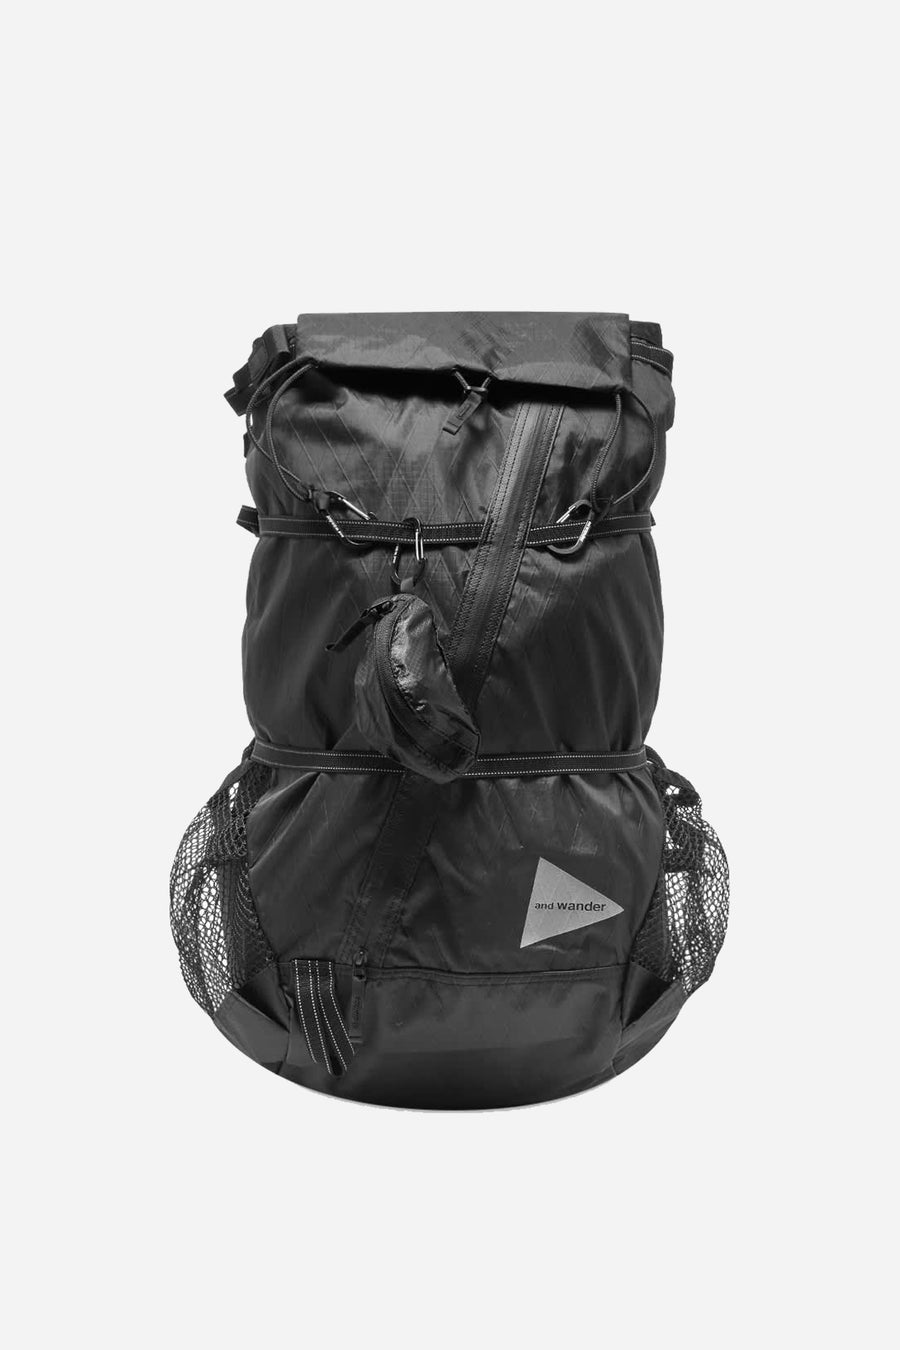 AND WANDER X-Pac 40L Backpack Black | HAVN